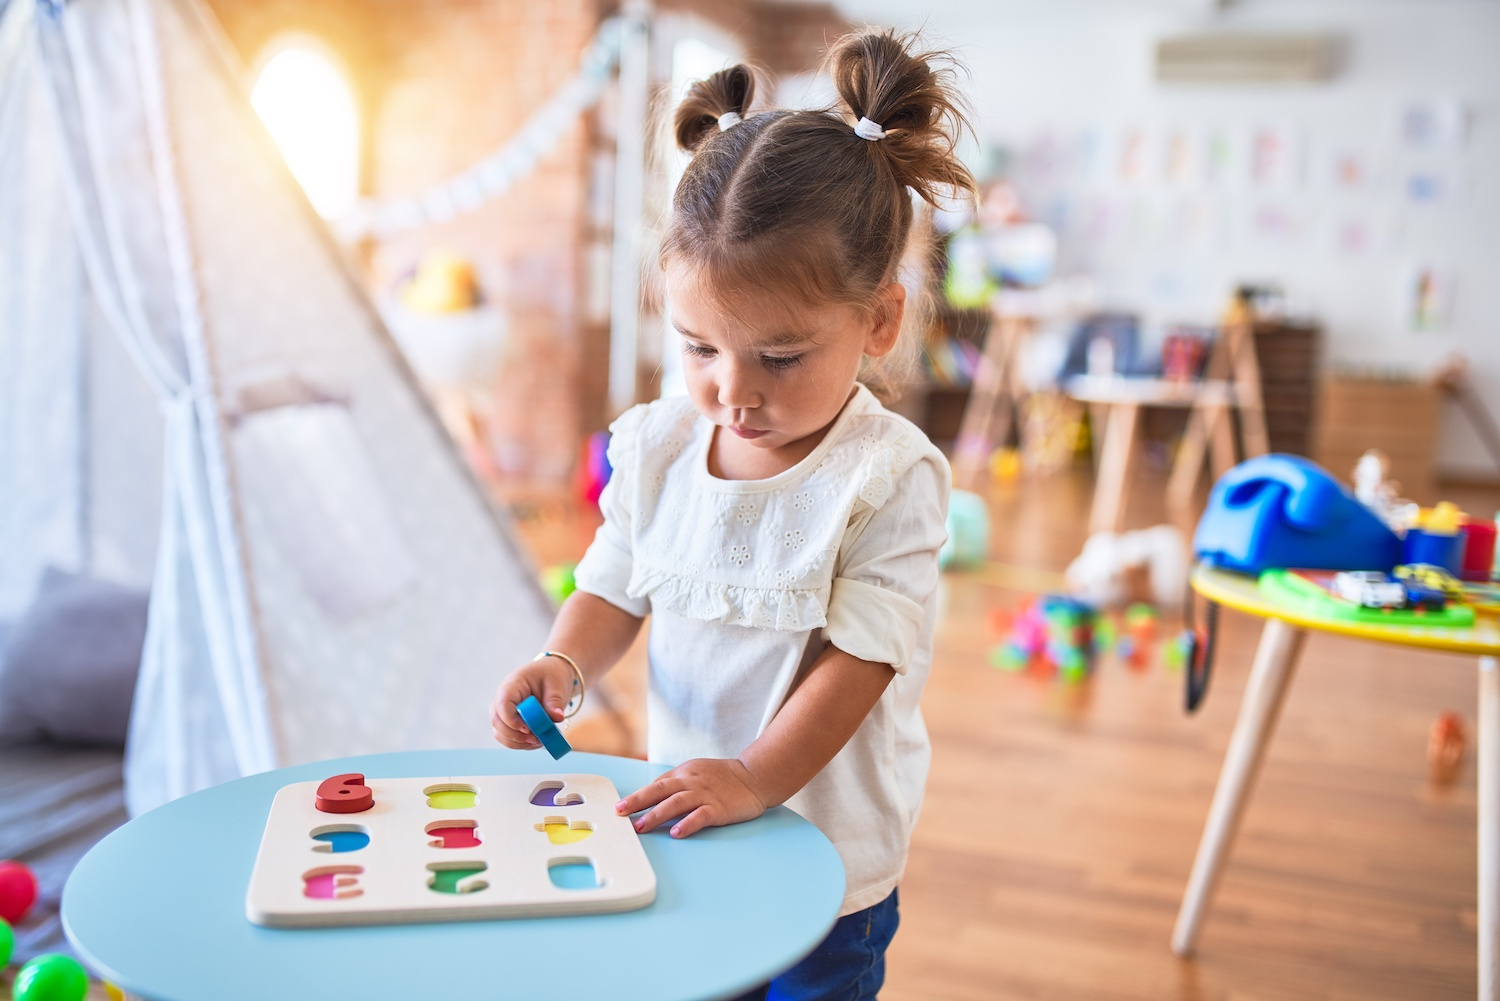 Preschool Executive Function Development | San Francisco Bay Area Preschool